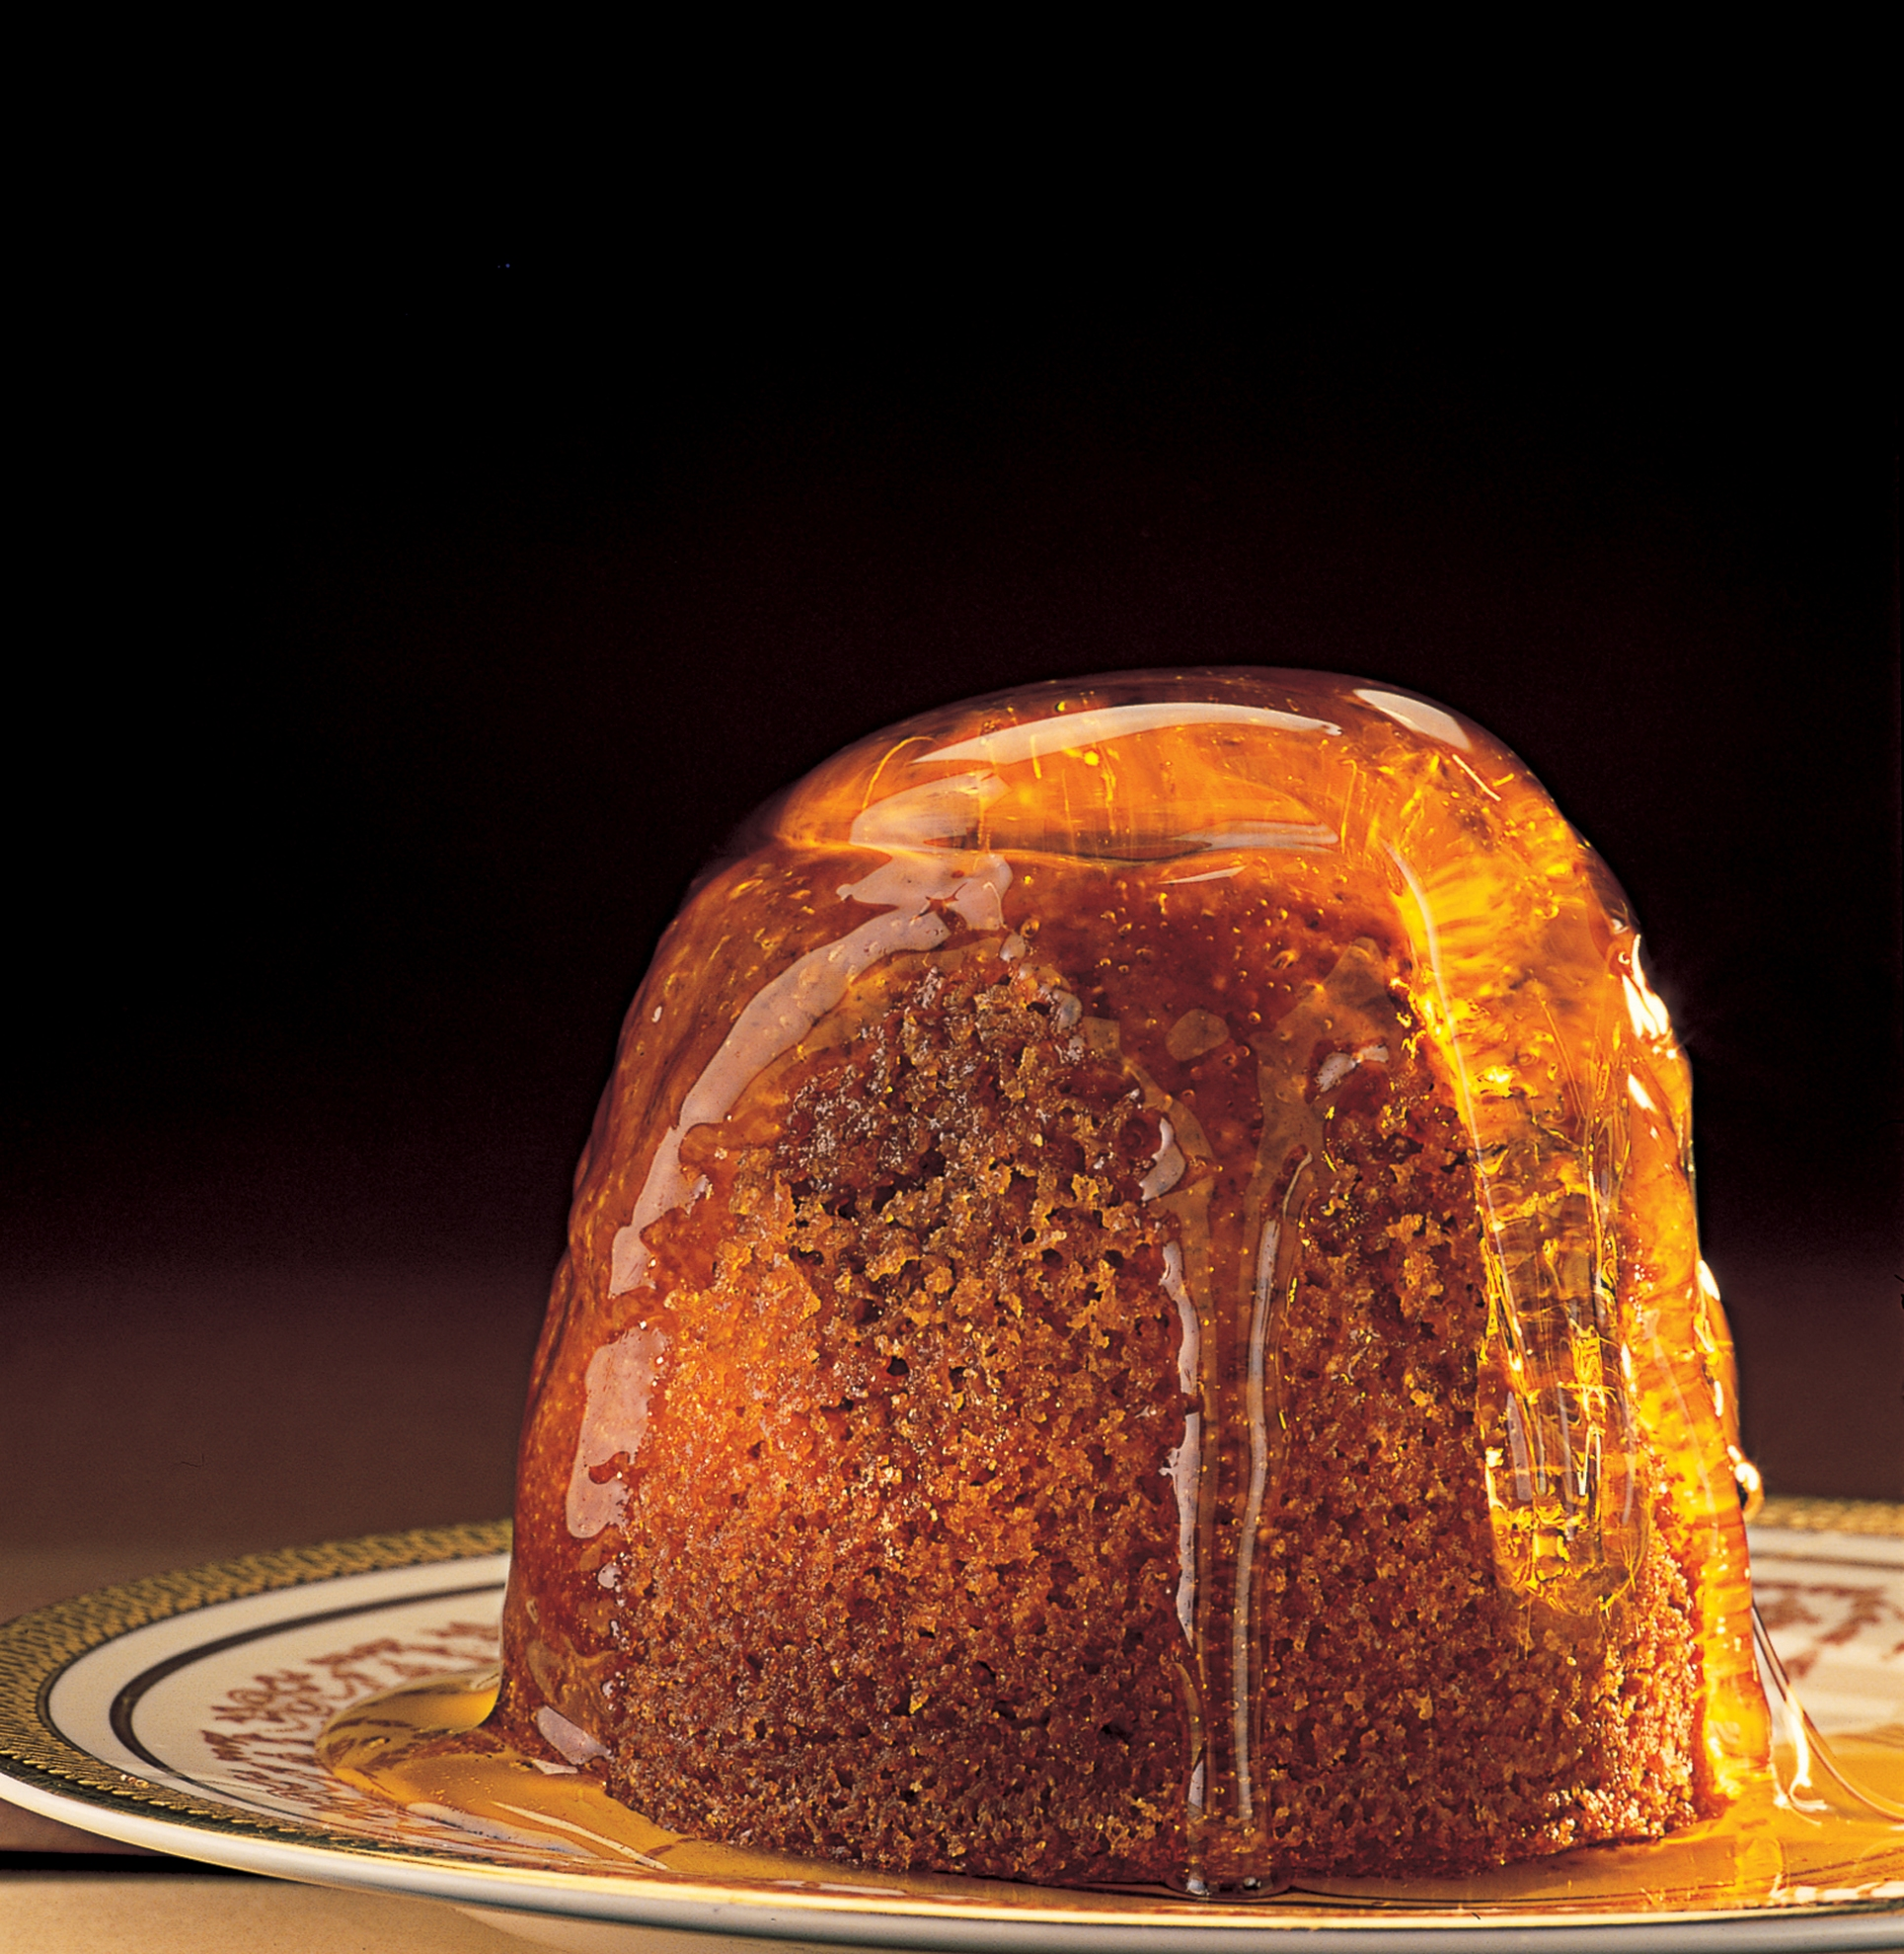 Treacle pudding for Treacle sponge pudding oven